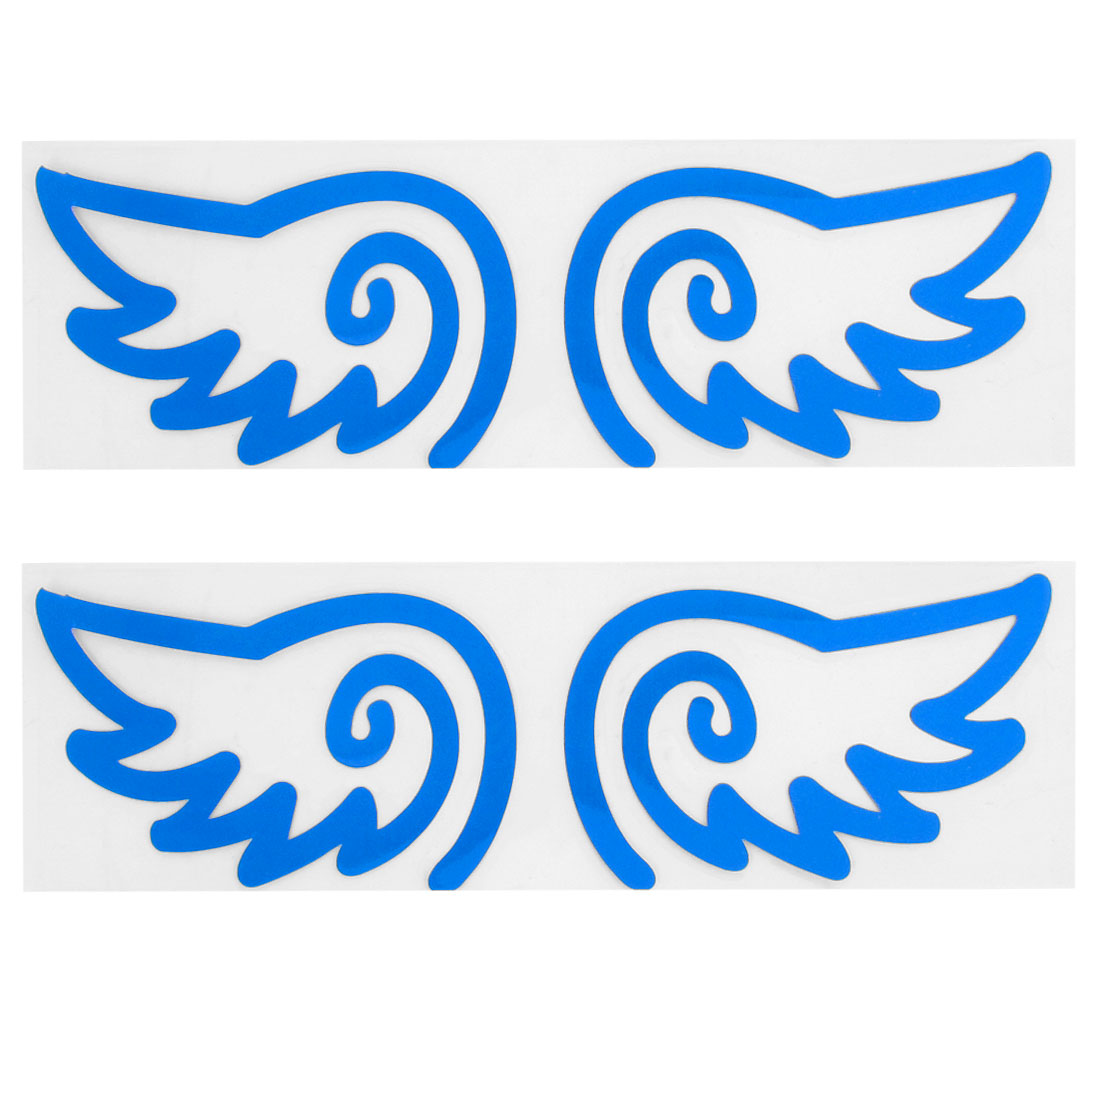 2 Pairs Self Adhesive Wing Shape Sign Car Reflective Sticker Decal Blue